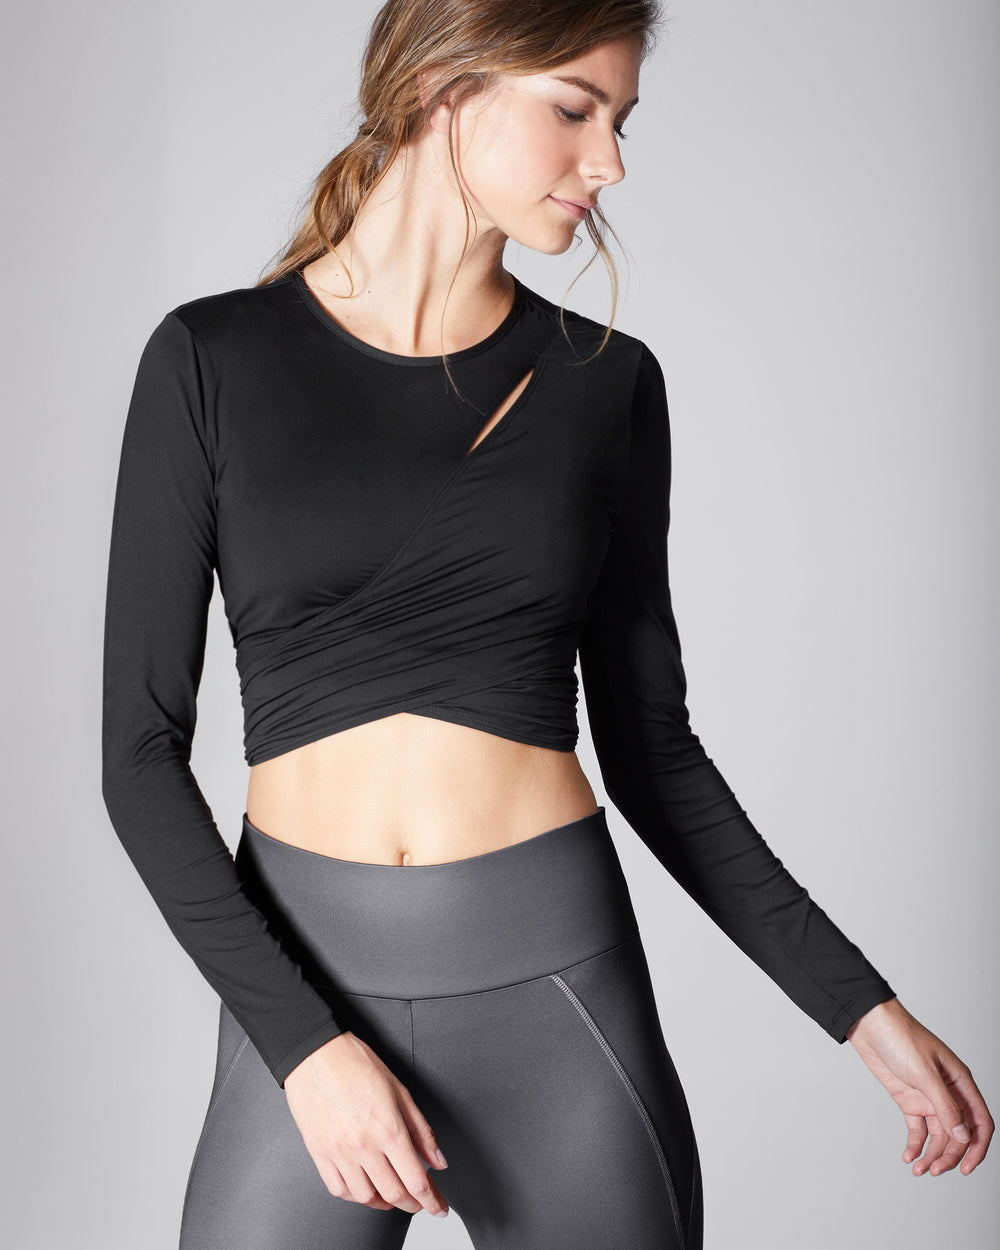 Glow Wrap Top - Black